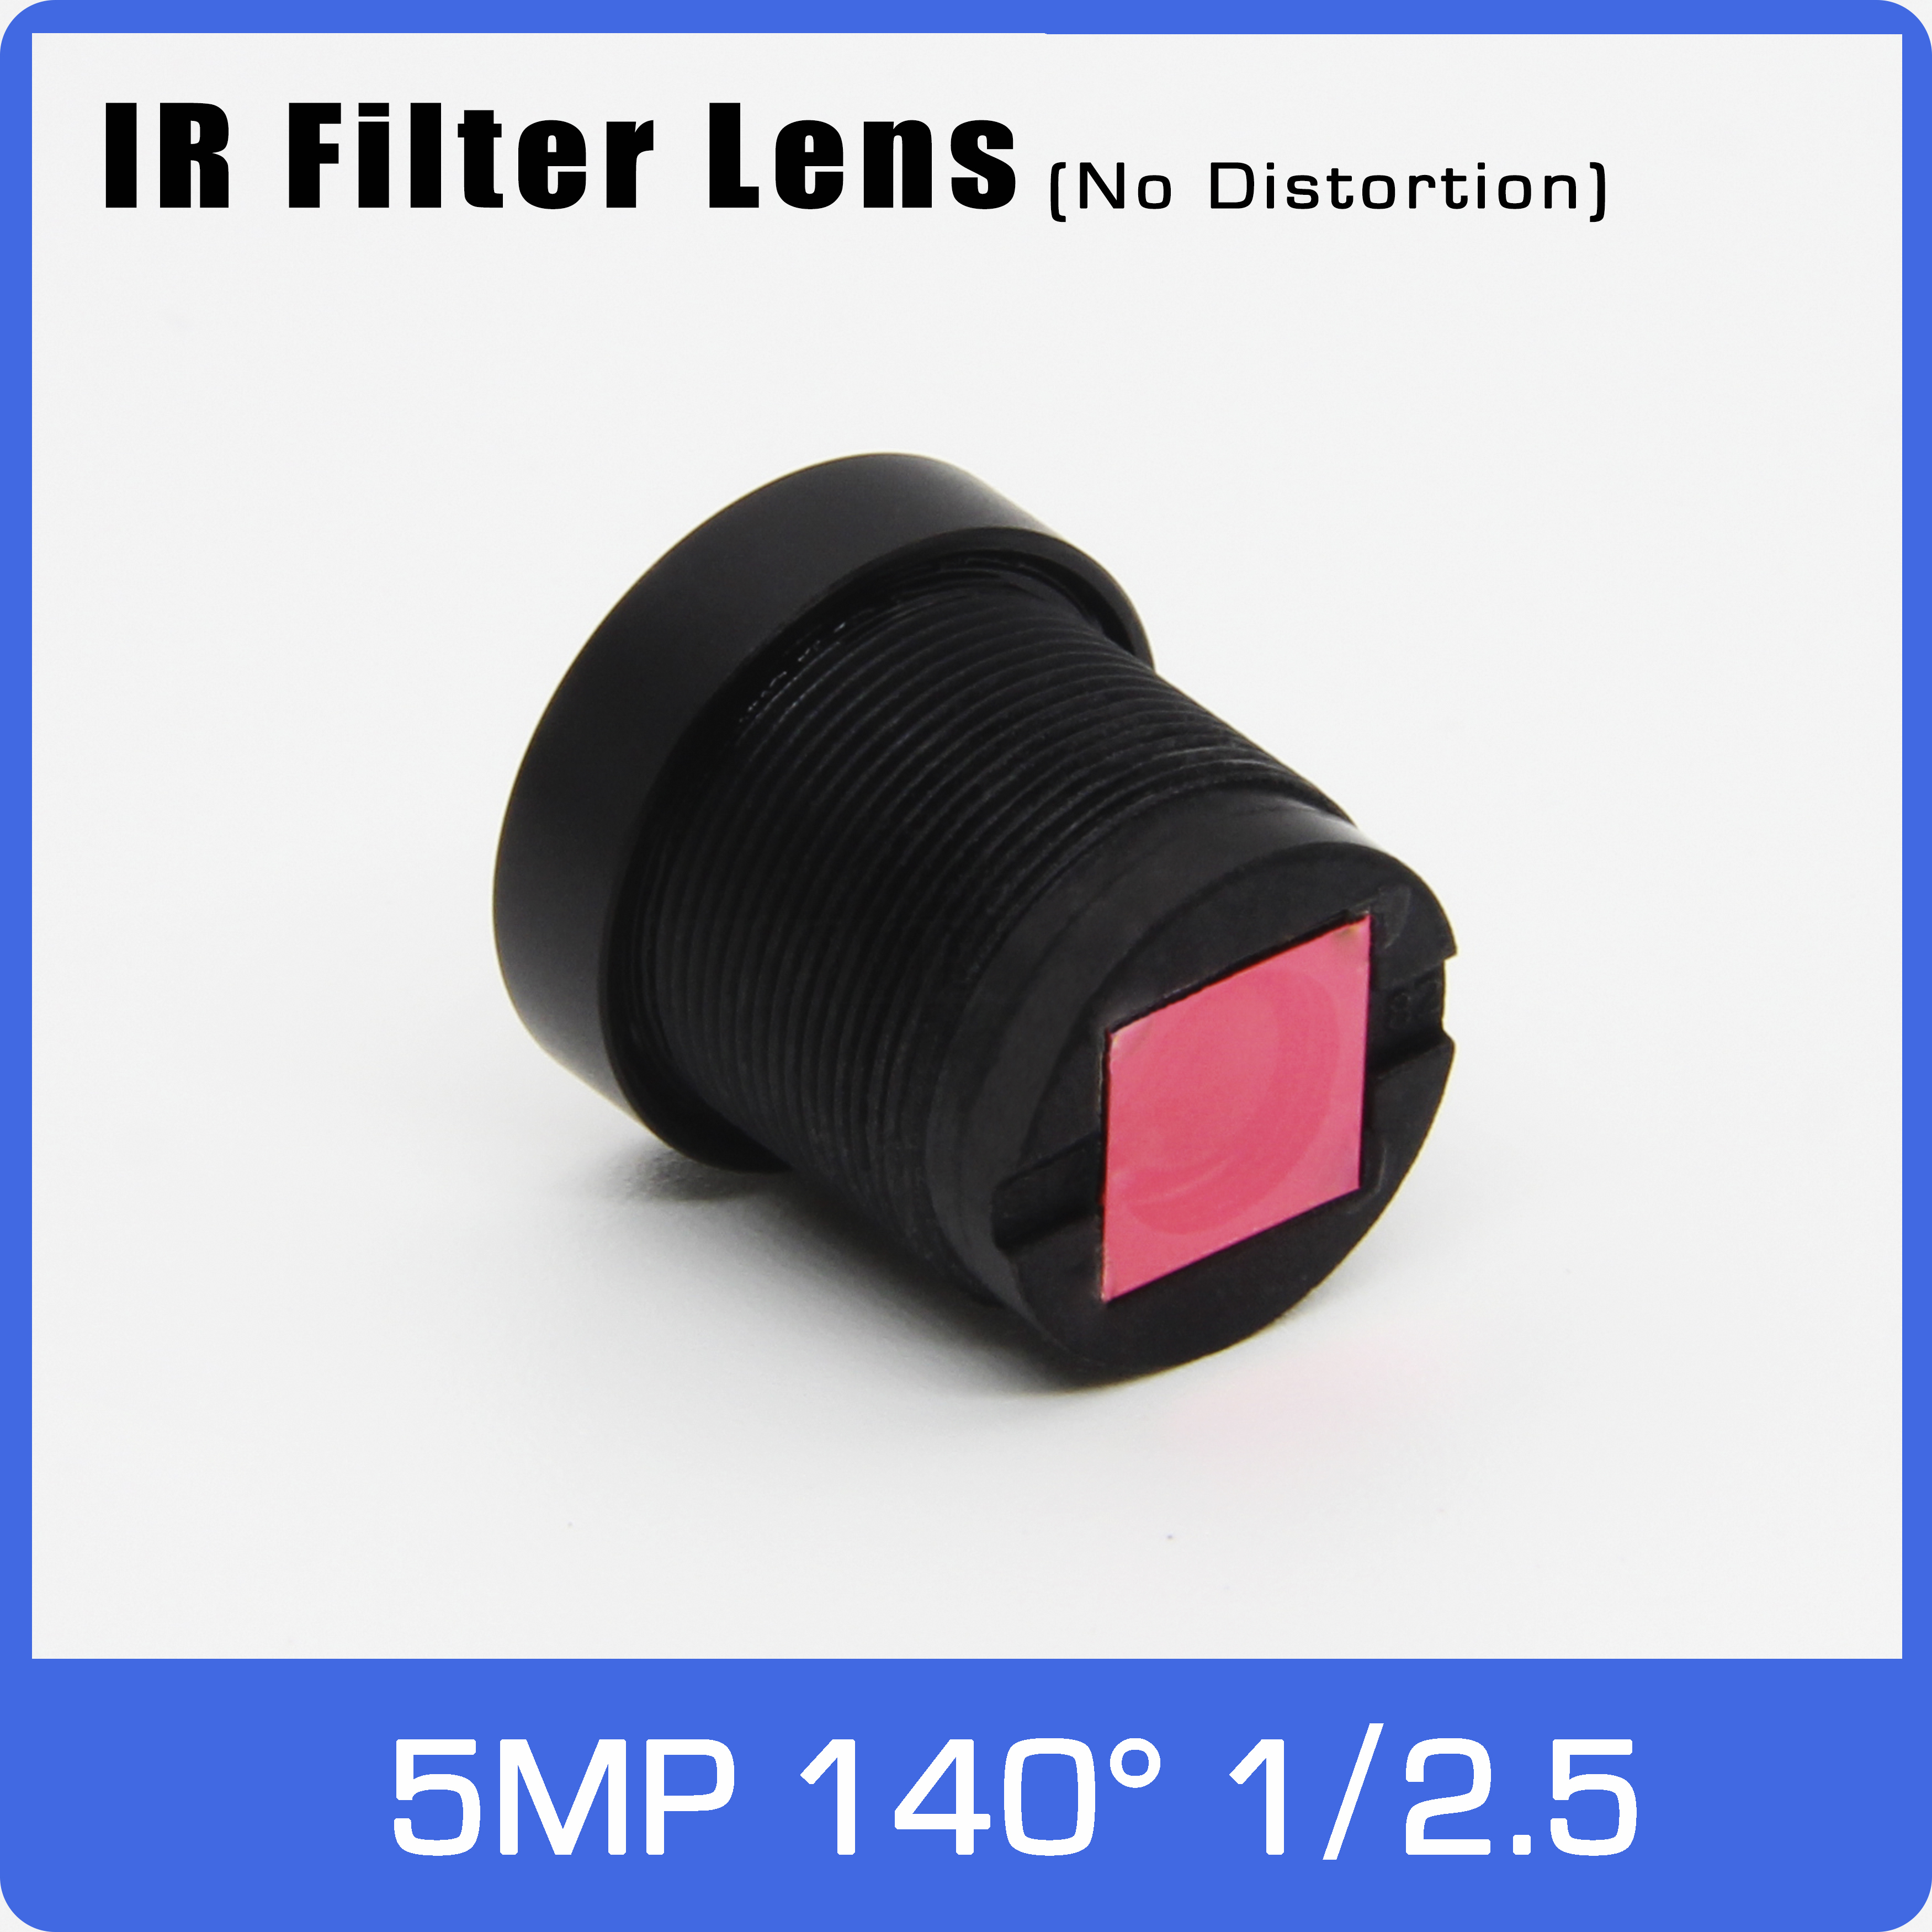 IR Filter 2.5mm Wide-angle No Distortion Lens 1/2.5 Inch 140 Degree 5MP For EKEN/SJCAM Action Camera Or Car Driving Recorder